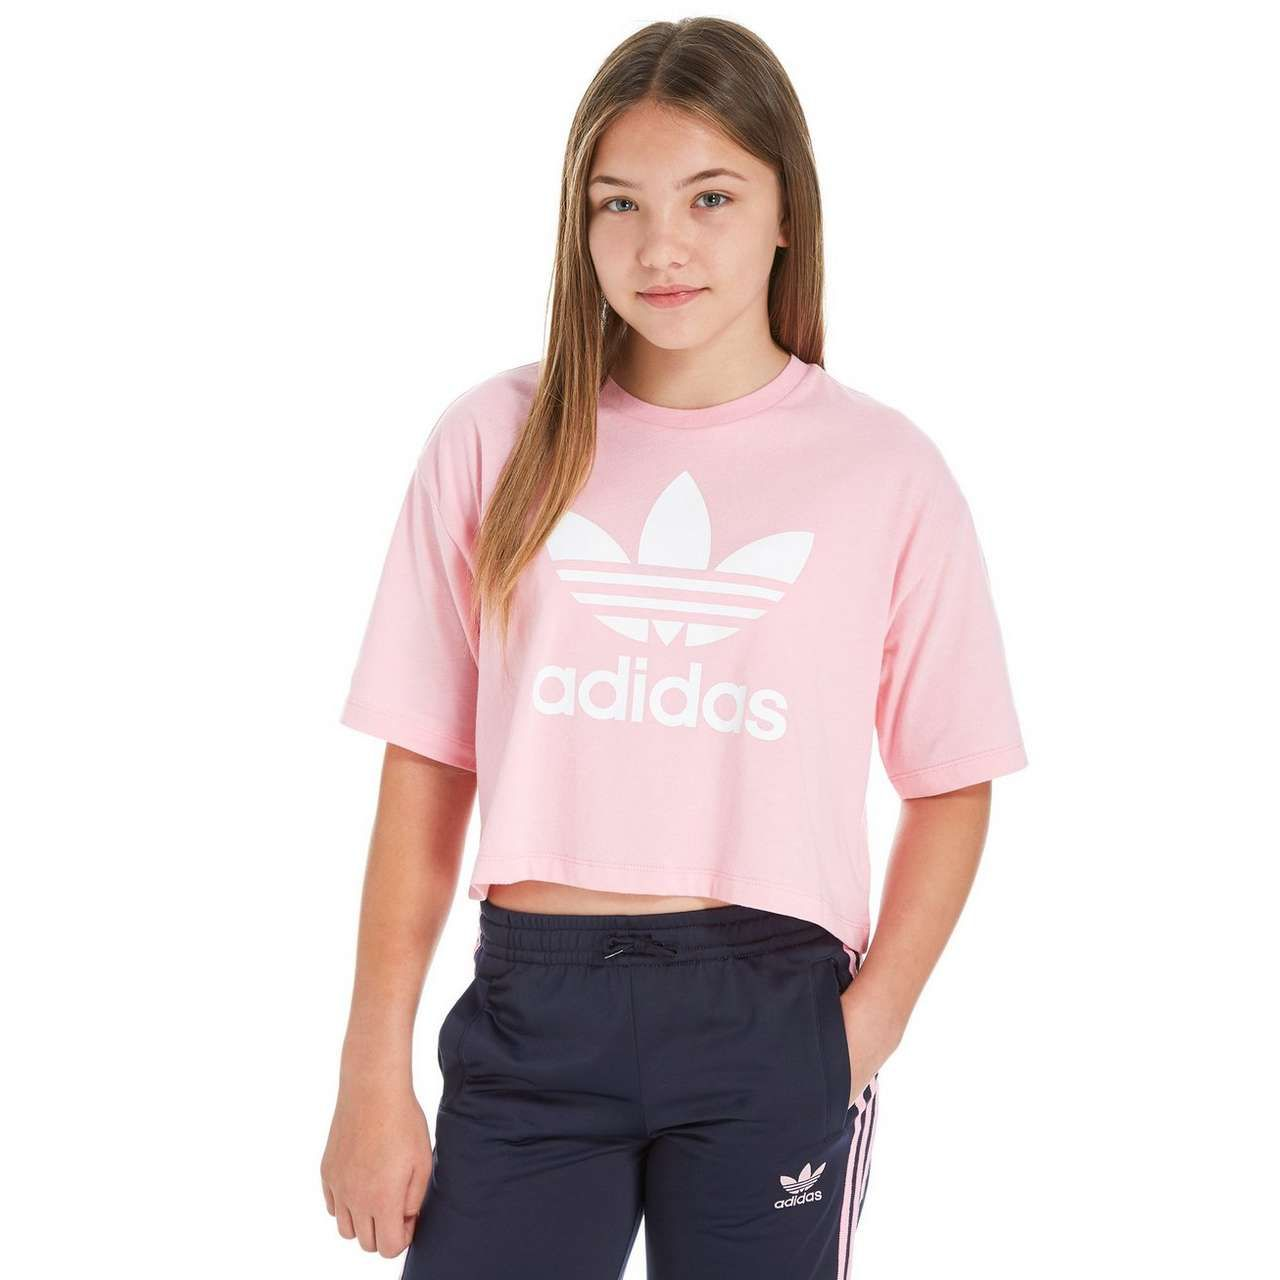 adidas trefoil t shirt junior